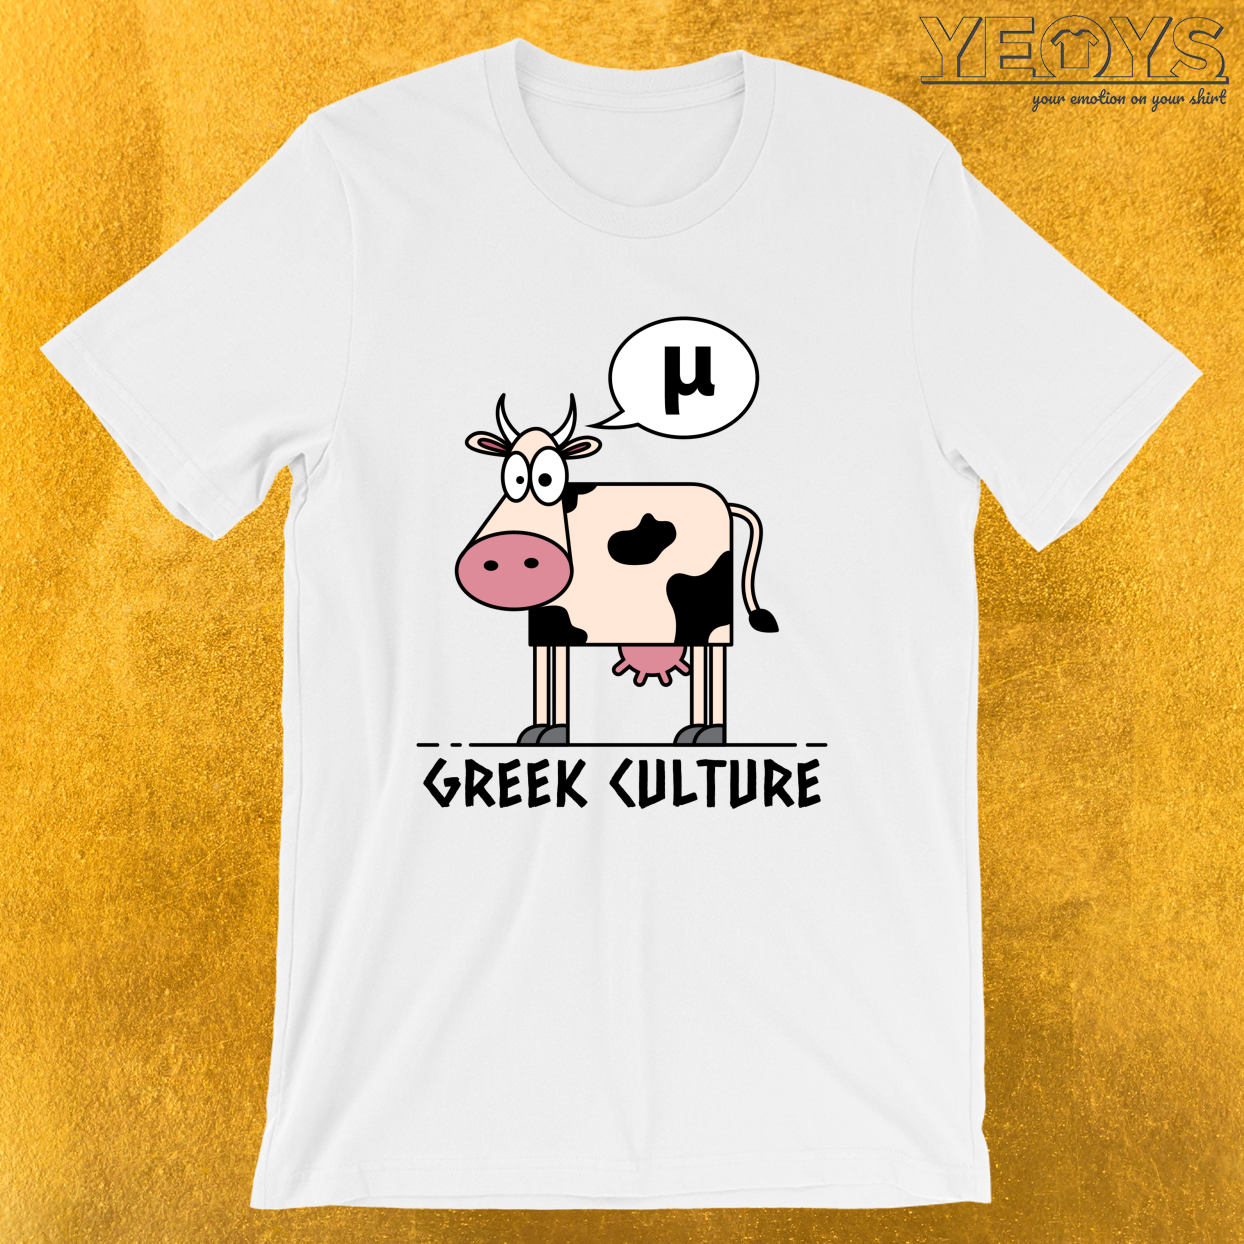 Greek Culture – Greek History Science Pun Tee